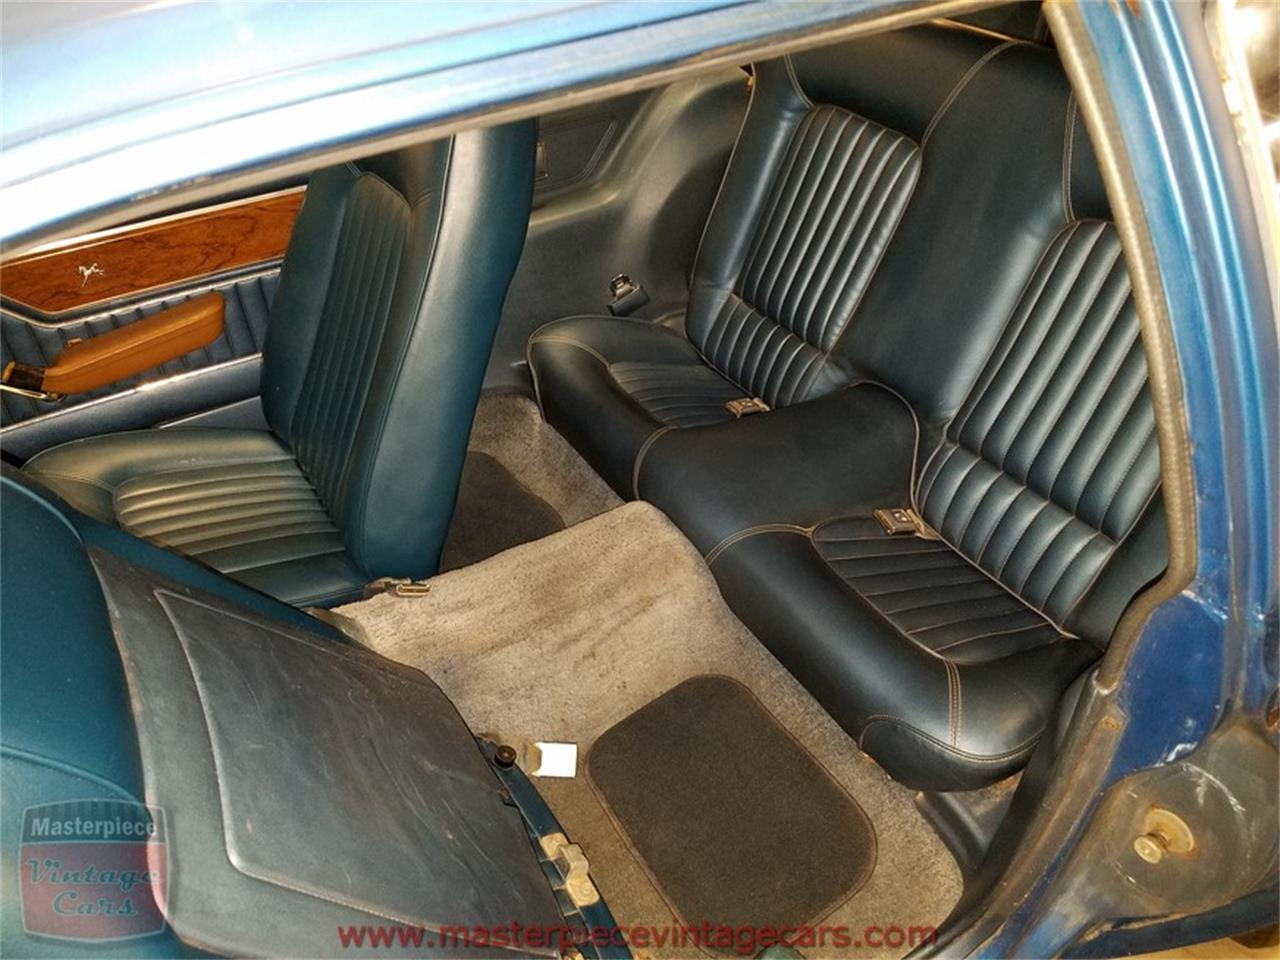 1973 Ford Pinto for sale in Whiteland, IN – photo 38